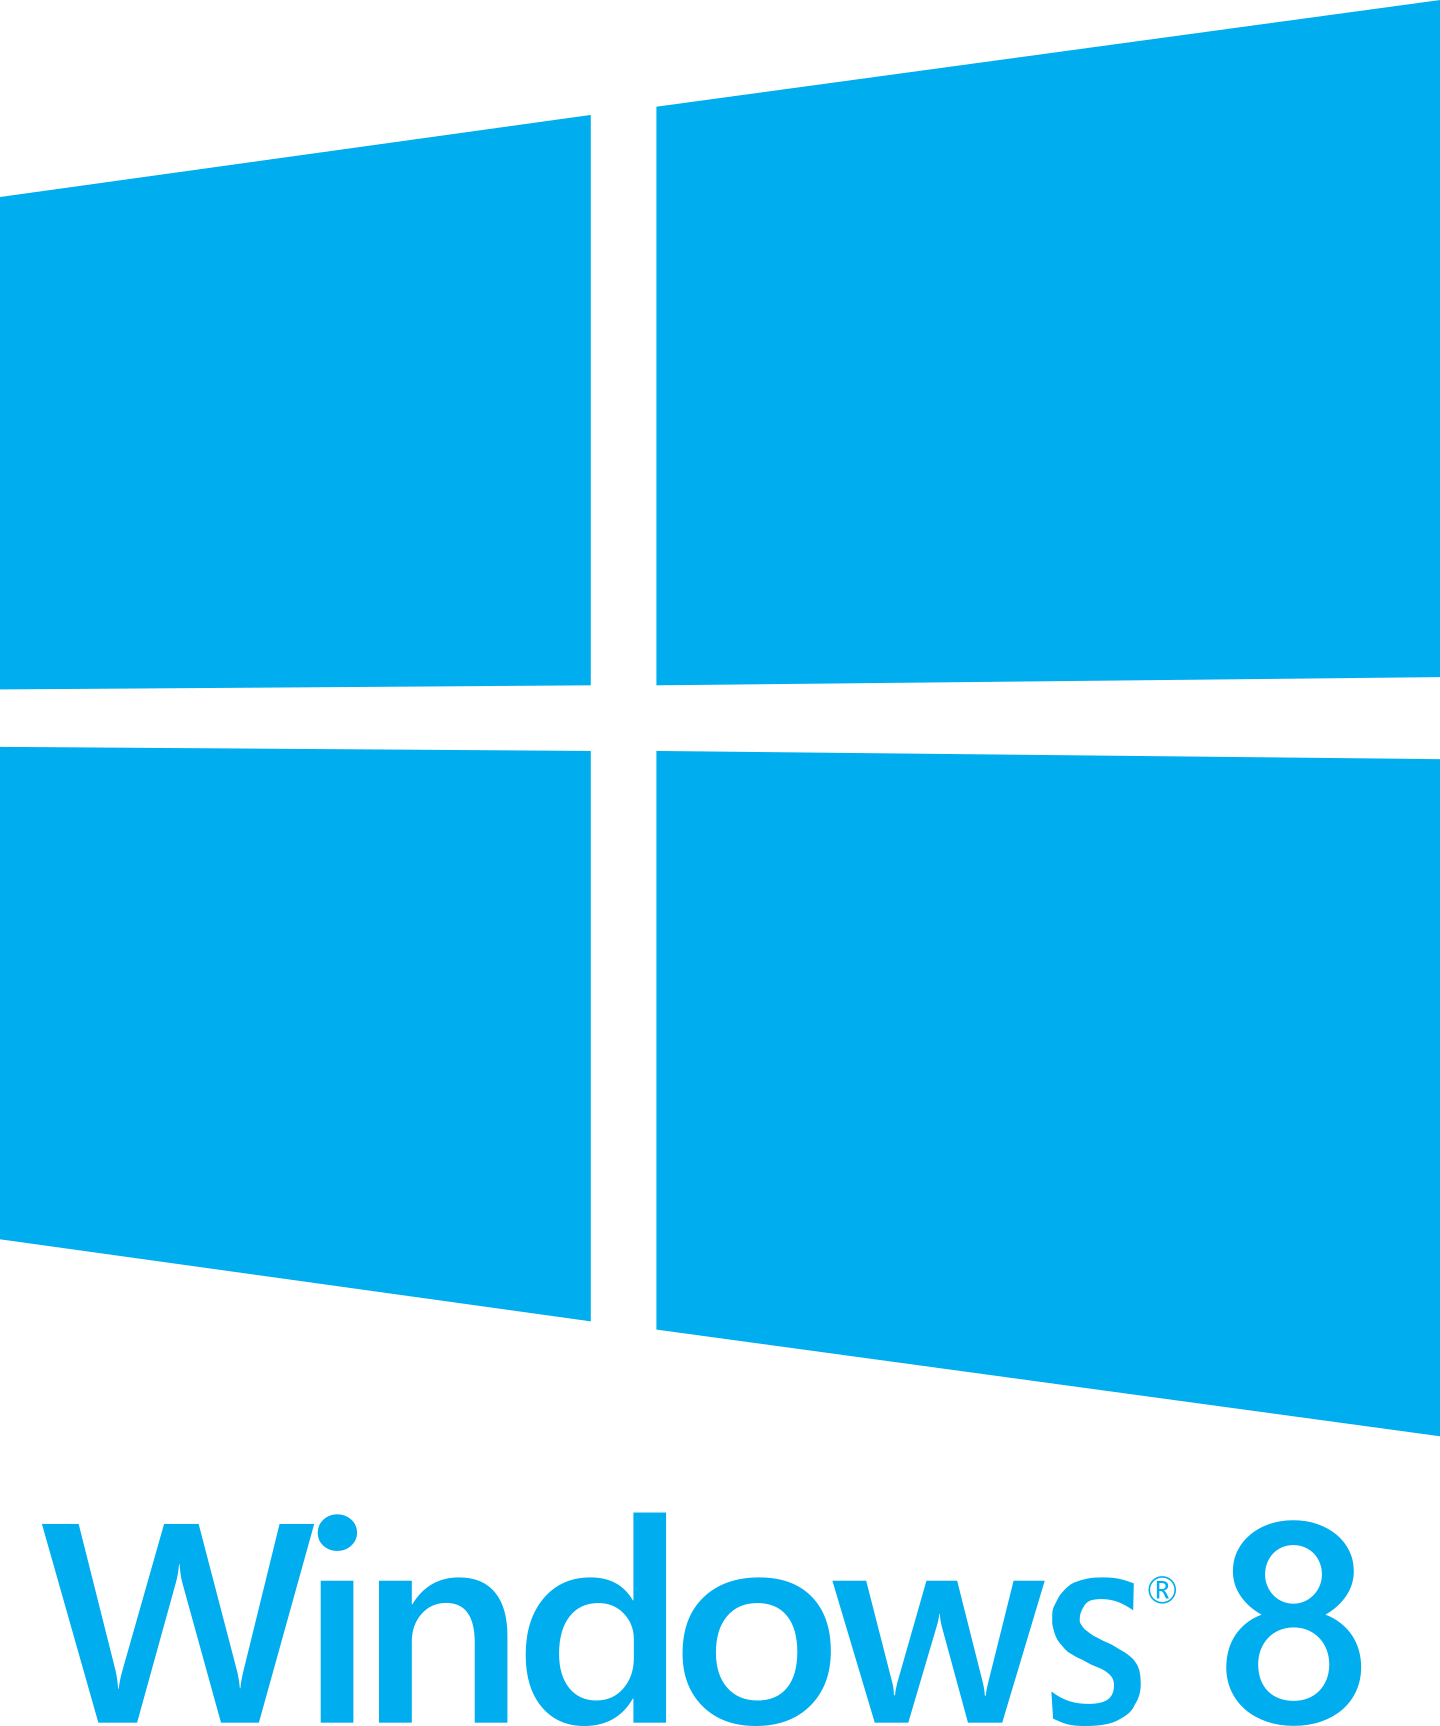 windows 8 logo 2 - Windows 8 Logo